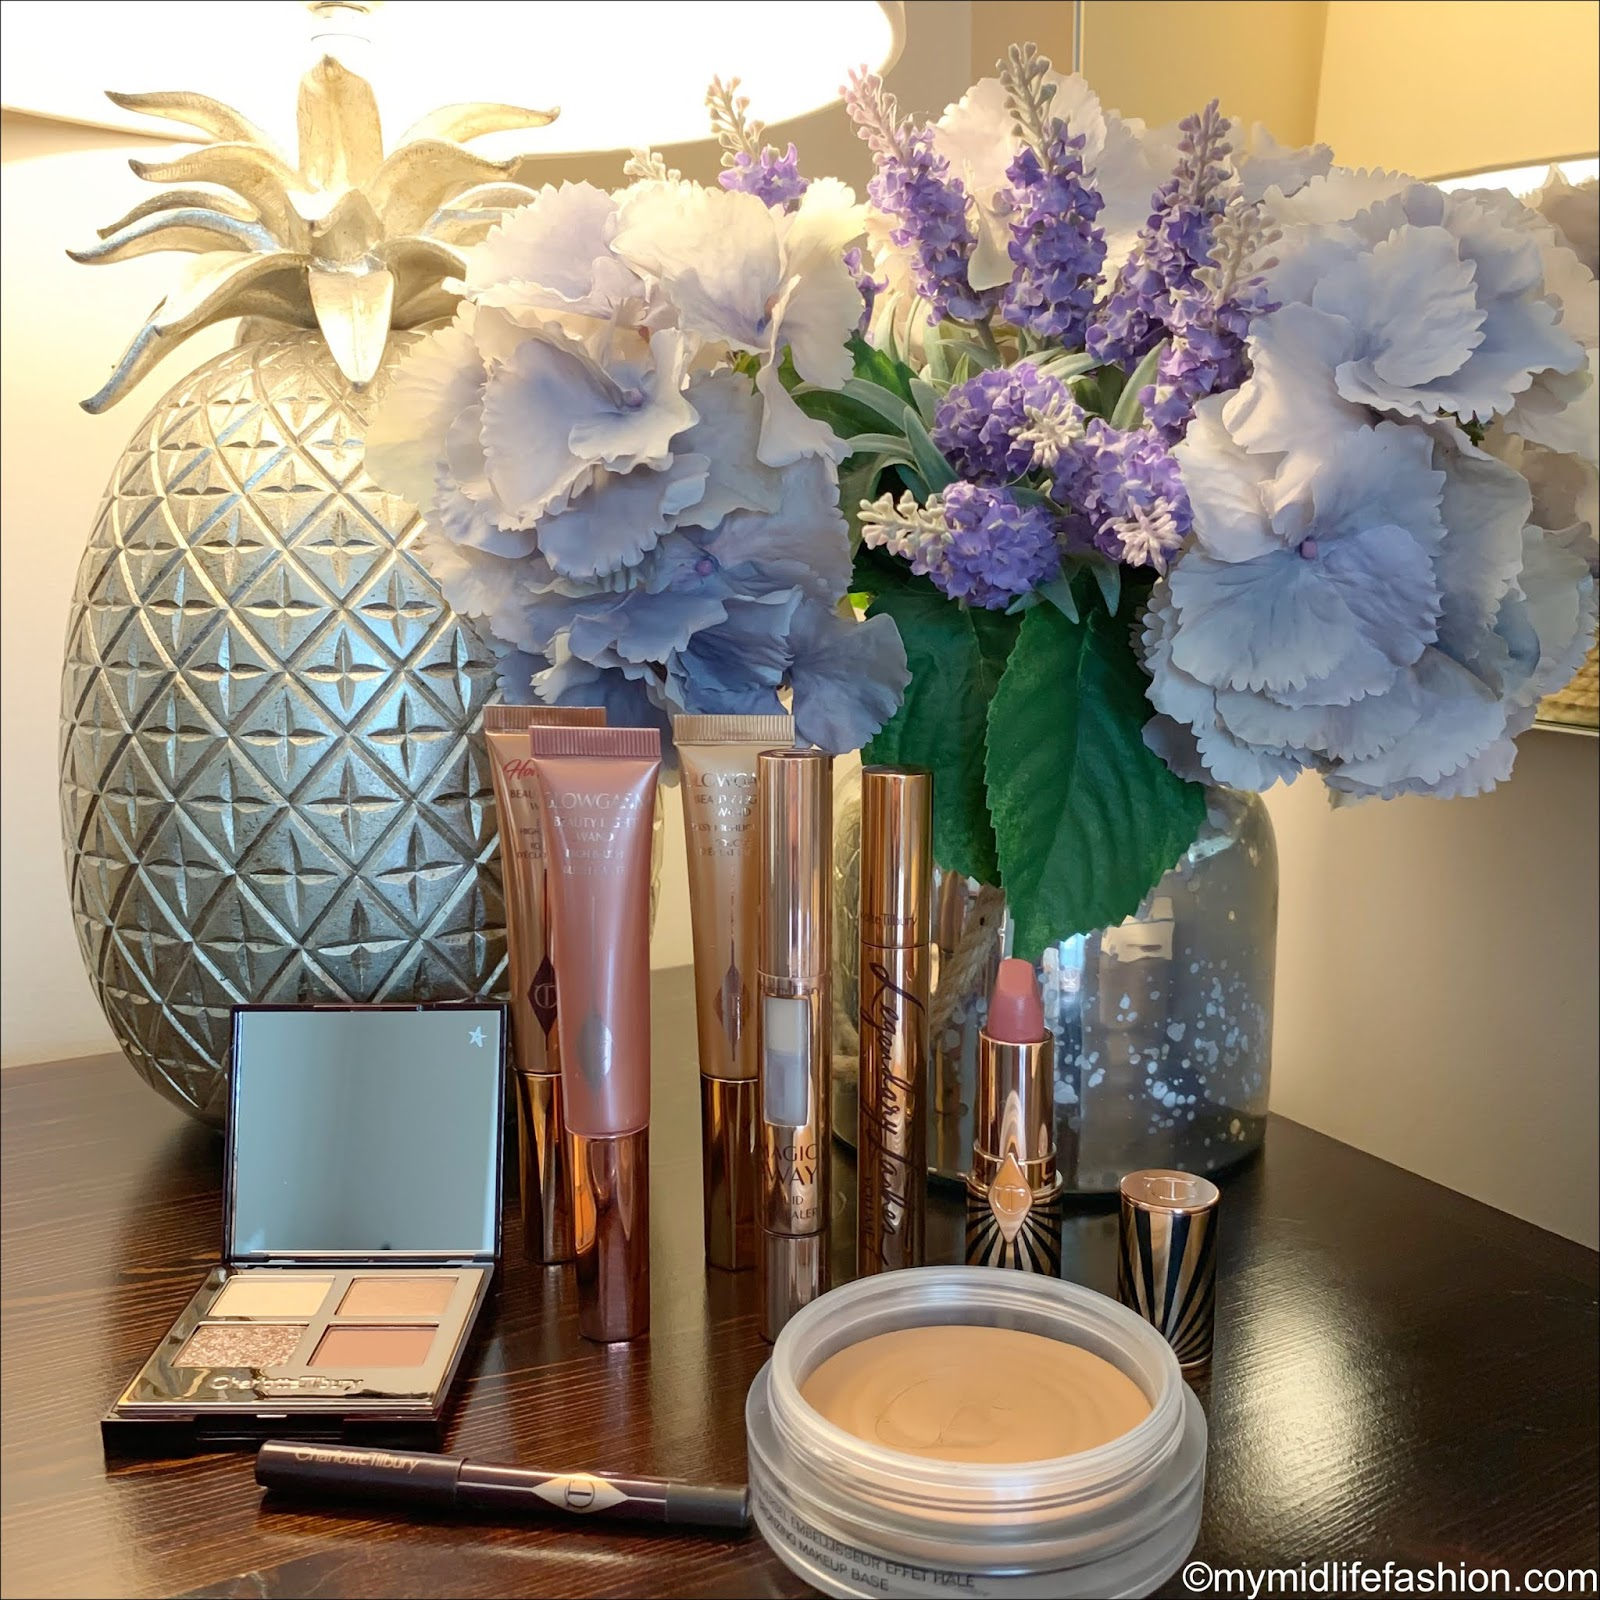 my midlife fashion, Charlotte tilbury, Charlotte tilbury Hollywood flawless filter,charlotte tilbury magic away liquid concealer, CHANEL Soleil tan de Chanel bronzing make up base, Charlotte tilbury Hollywood beauty light want in glowgasm goldgasm, Charlotte tilbury Hollywood beauty light wand in glowgasm pinkgasm, Charlotte tilbury Hollywood beauty light want in Hollywood spotlight, Charlotte tilbury exaggerates eye palette, Charlotte tilbury rock n kohl in barbarella brown, Charlotte tilbury legendary lashes volume 2, Charlotte tilbury hot lips 2 in love with Olivia